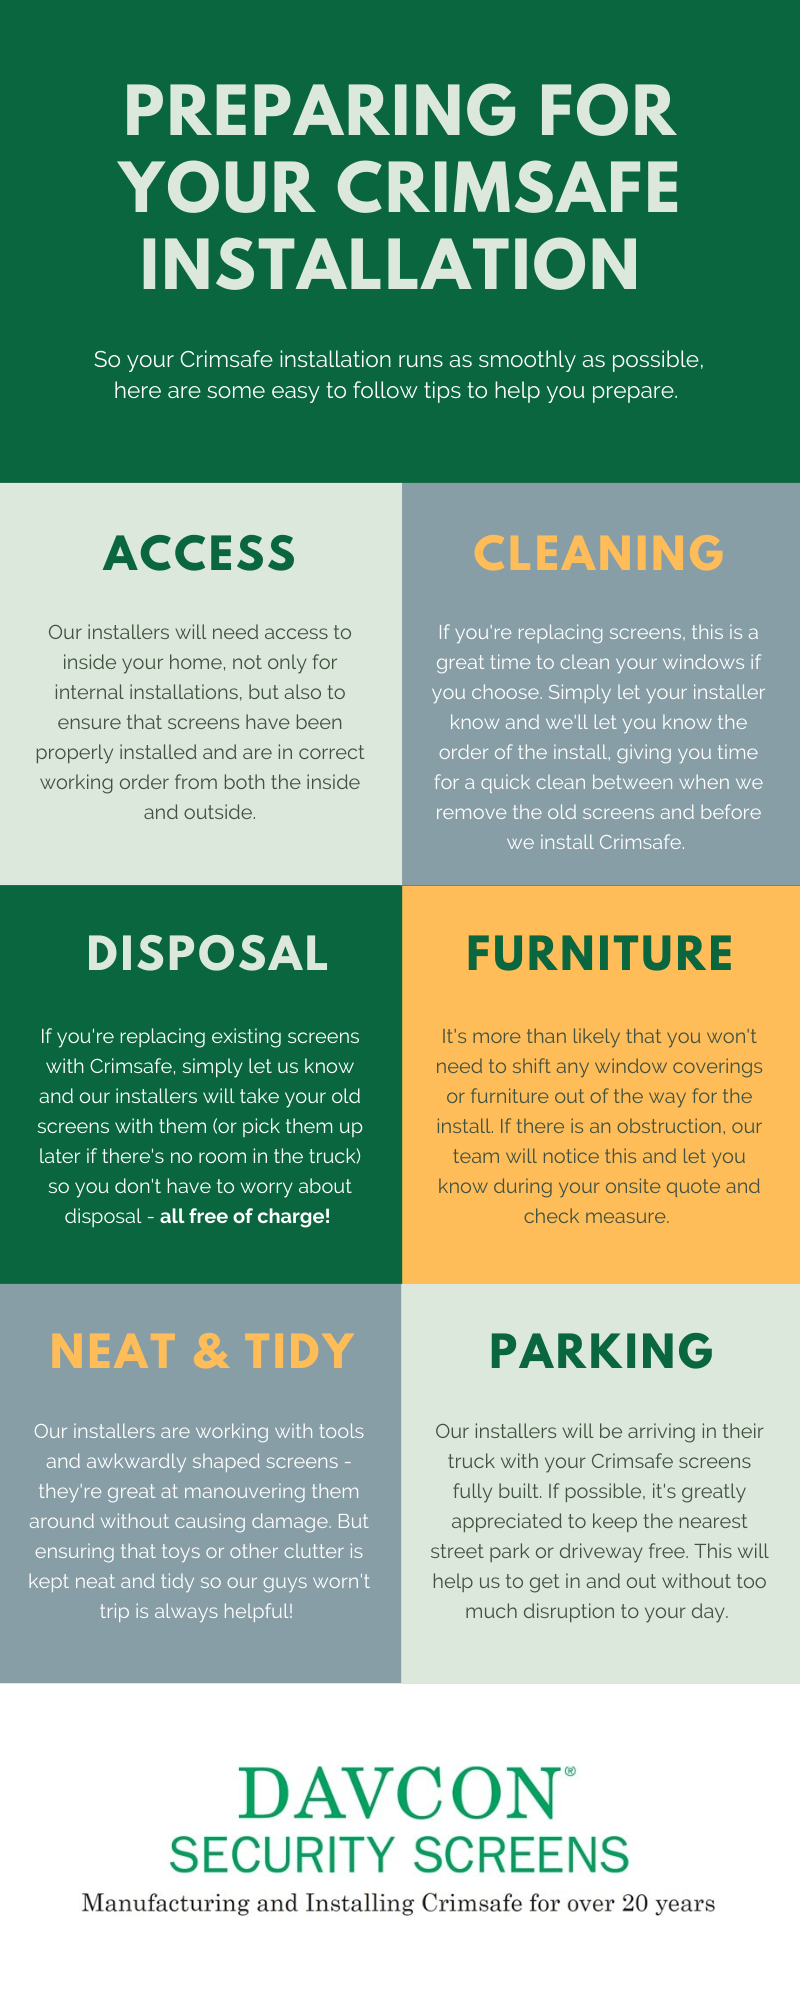 How to prepare for your Crimsafe installation with Davcon infographic